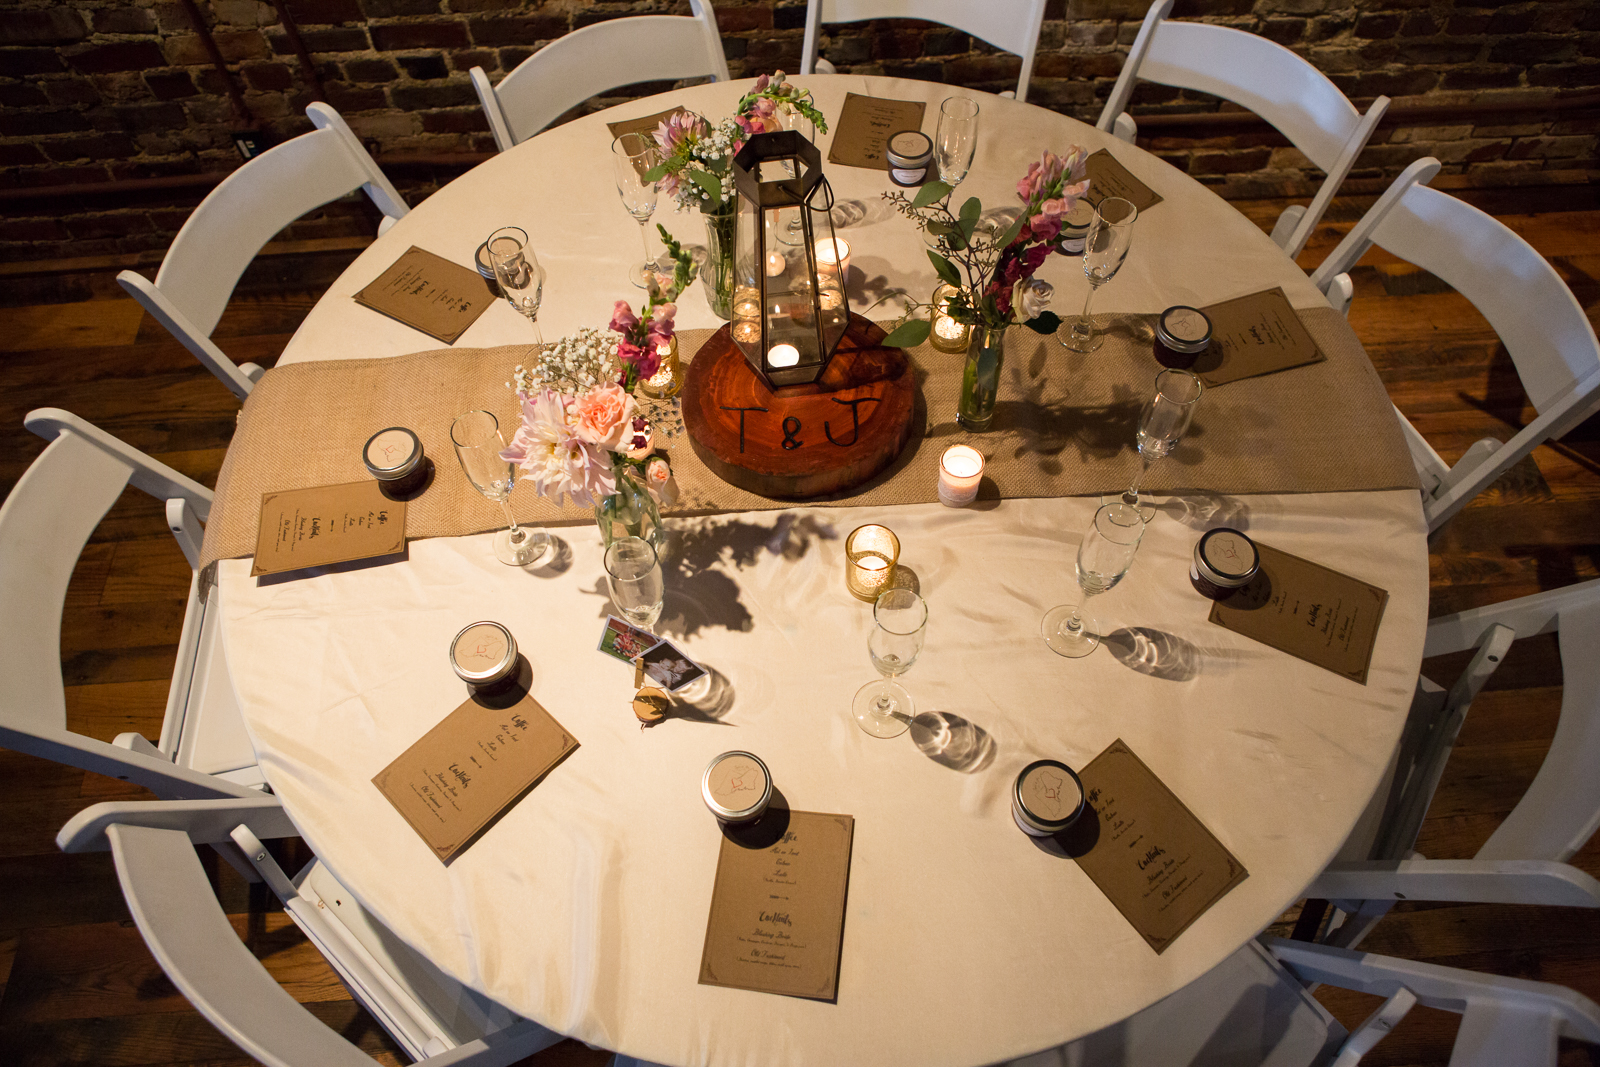 The Wedding Reception was held at the beautiful  Horton Building  in Nashville, Tennessee